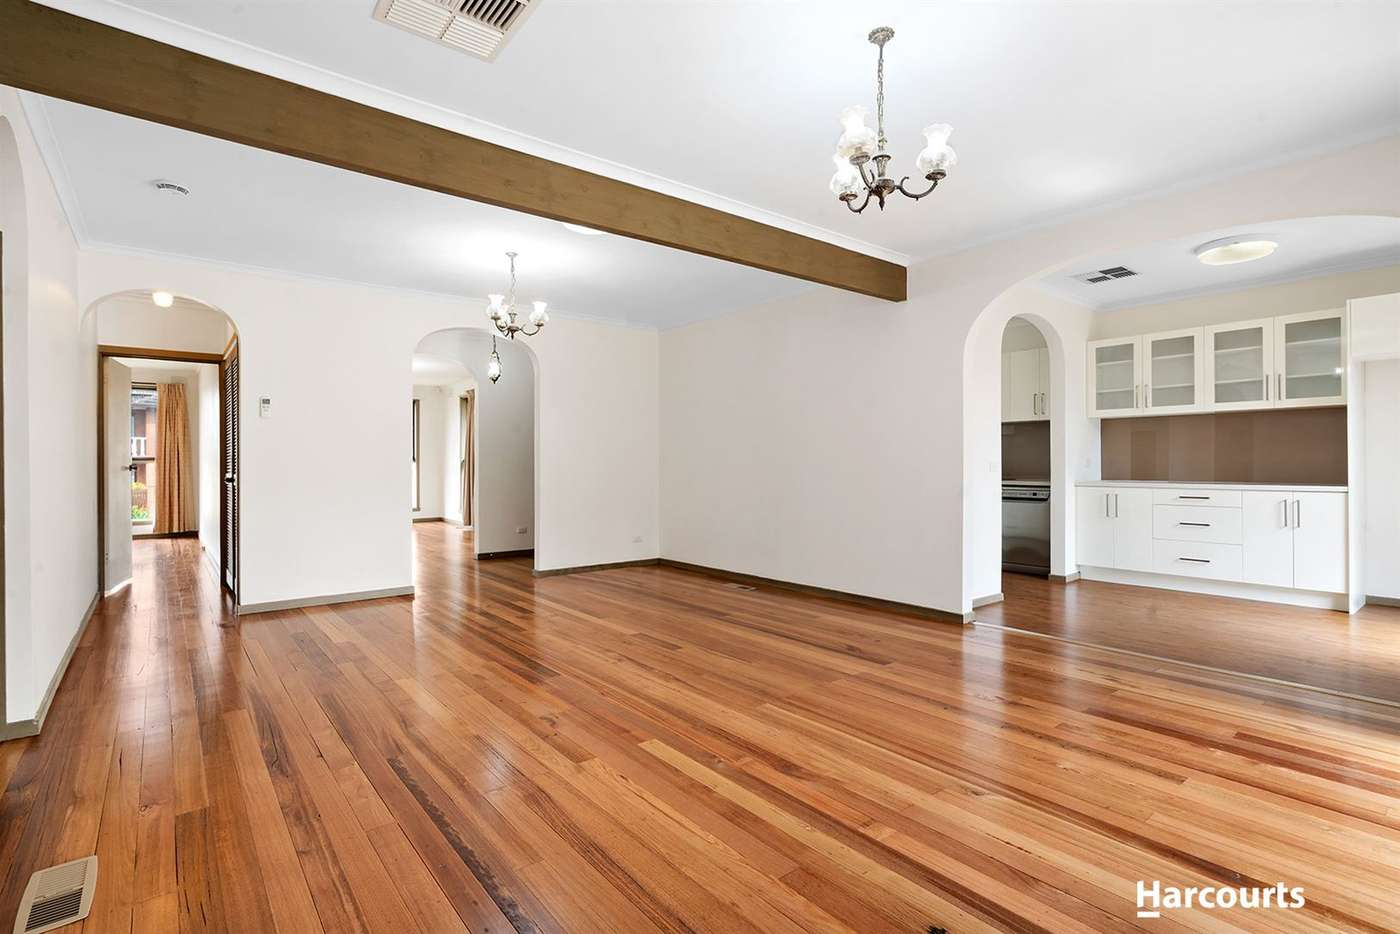 Fifth view of Homely house listing, 67 Curie Avenue, Mulgrave VIC 3170